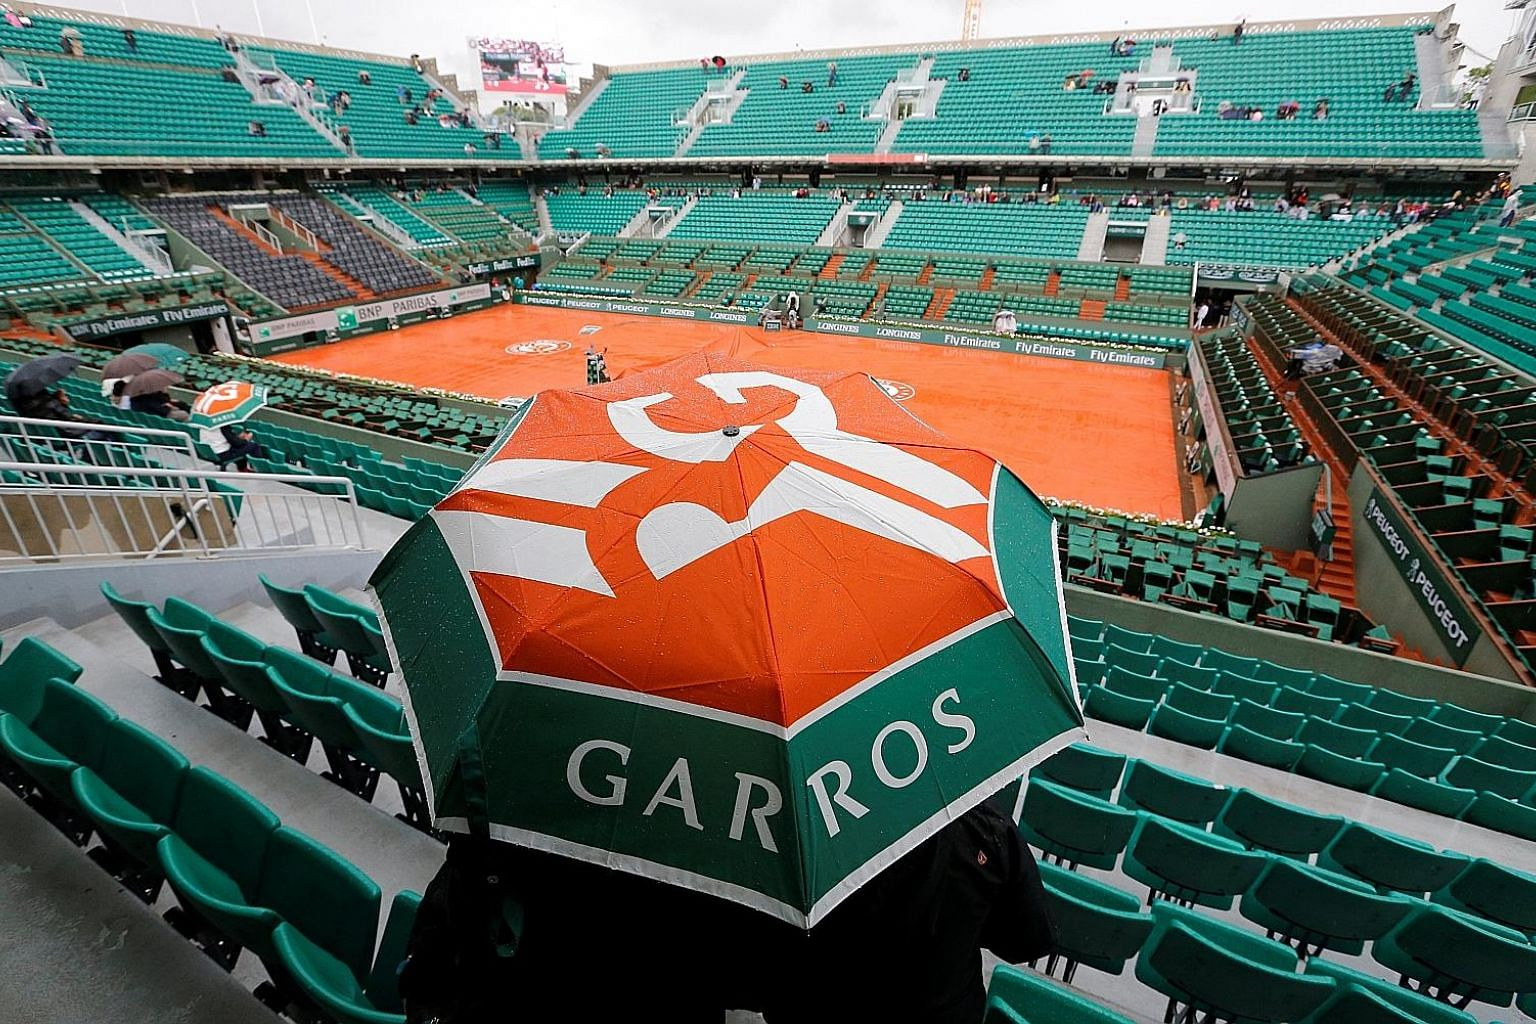 Rain halts play often at Roland Garros and conditions are tough when the ball gets wet and heavy. Ultimately, players just have to adjust.